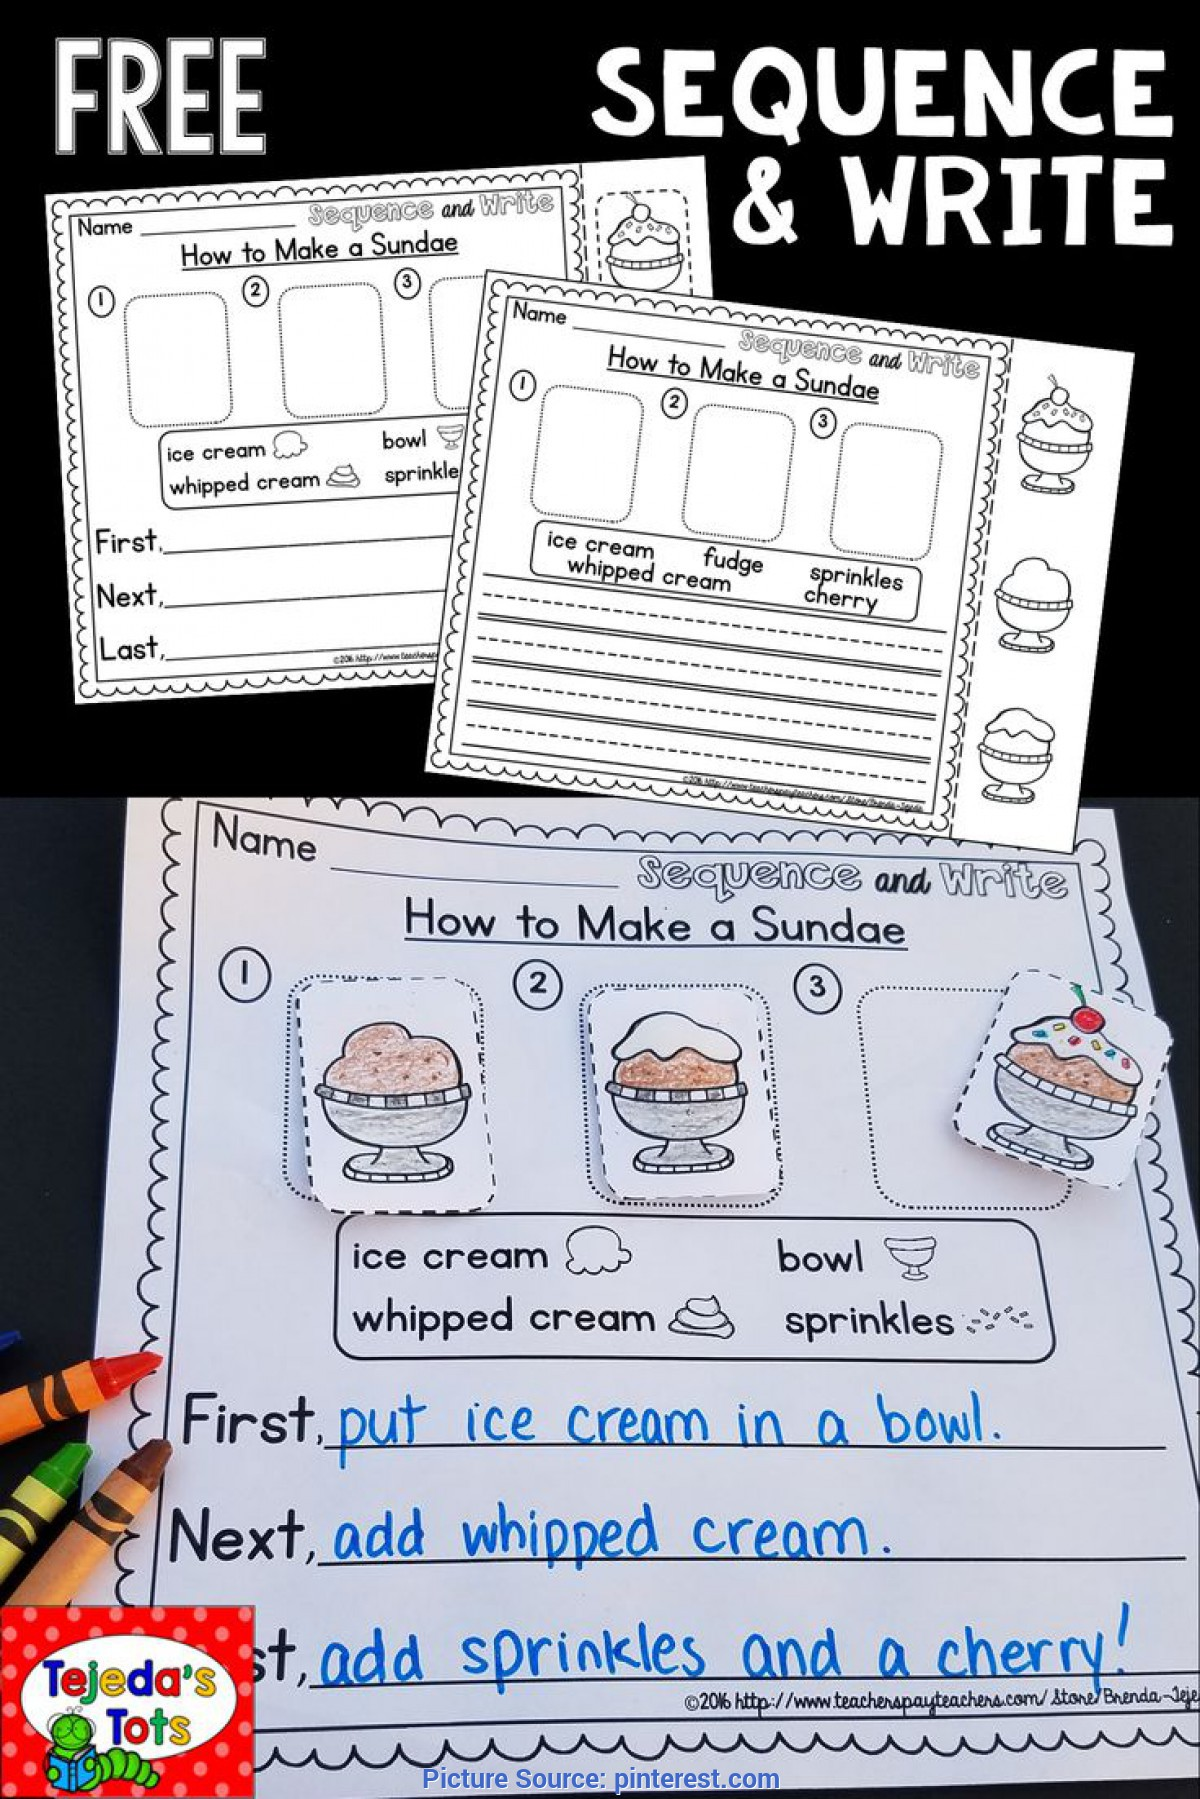 Simple How To Make A Sandwich Lesson Plans Kindergarten Best 25+ Sequencing Activities Ideas On Pinterest | Stor